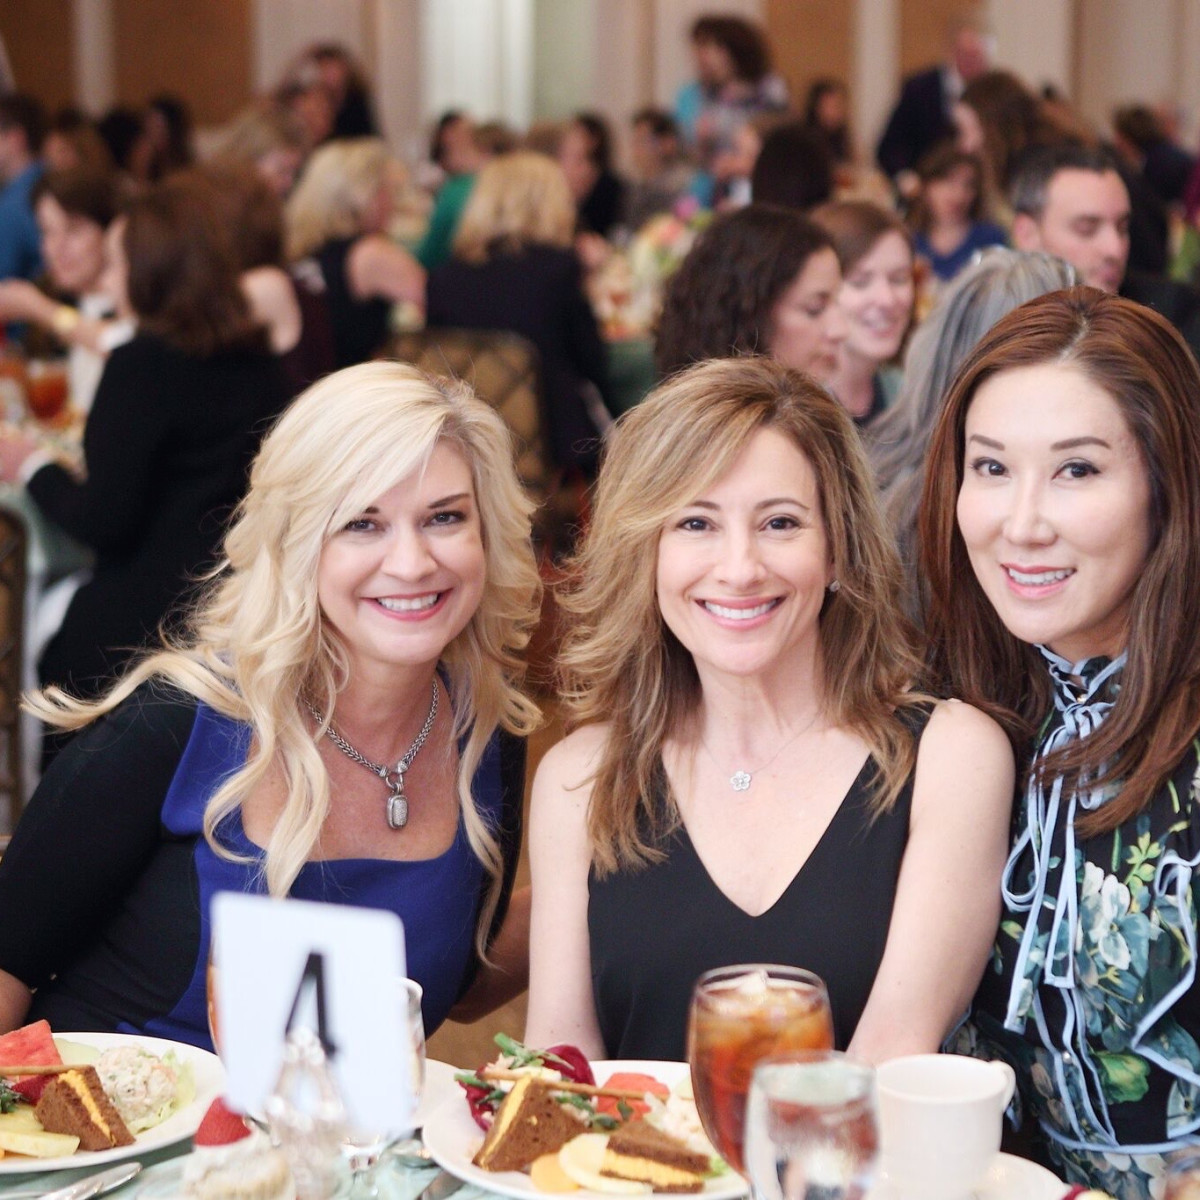 ChildBuilders luncheon Tammie Johnson, Dena Winkler and Mandy Kao